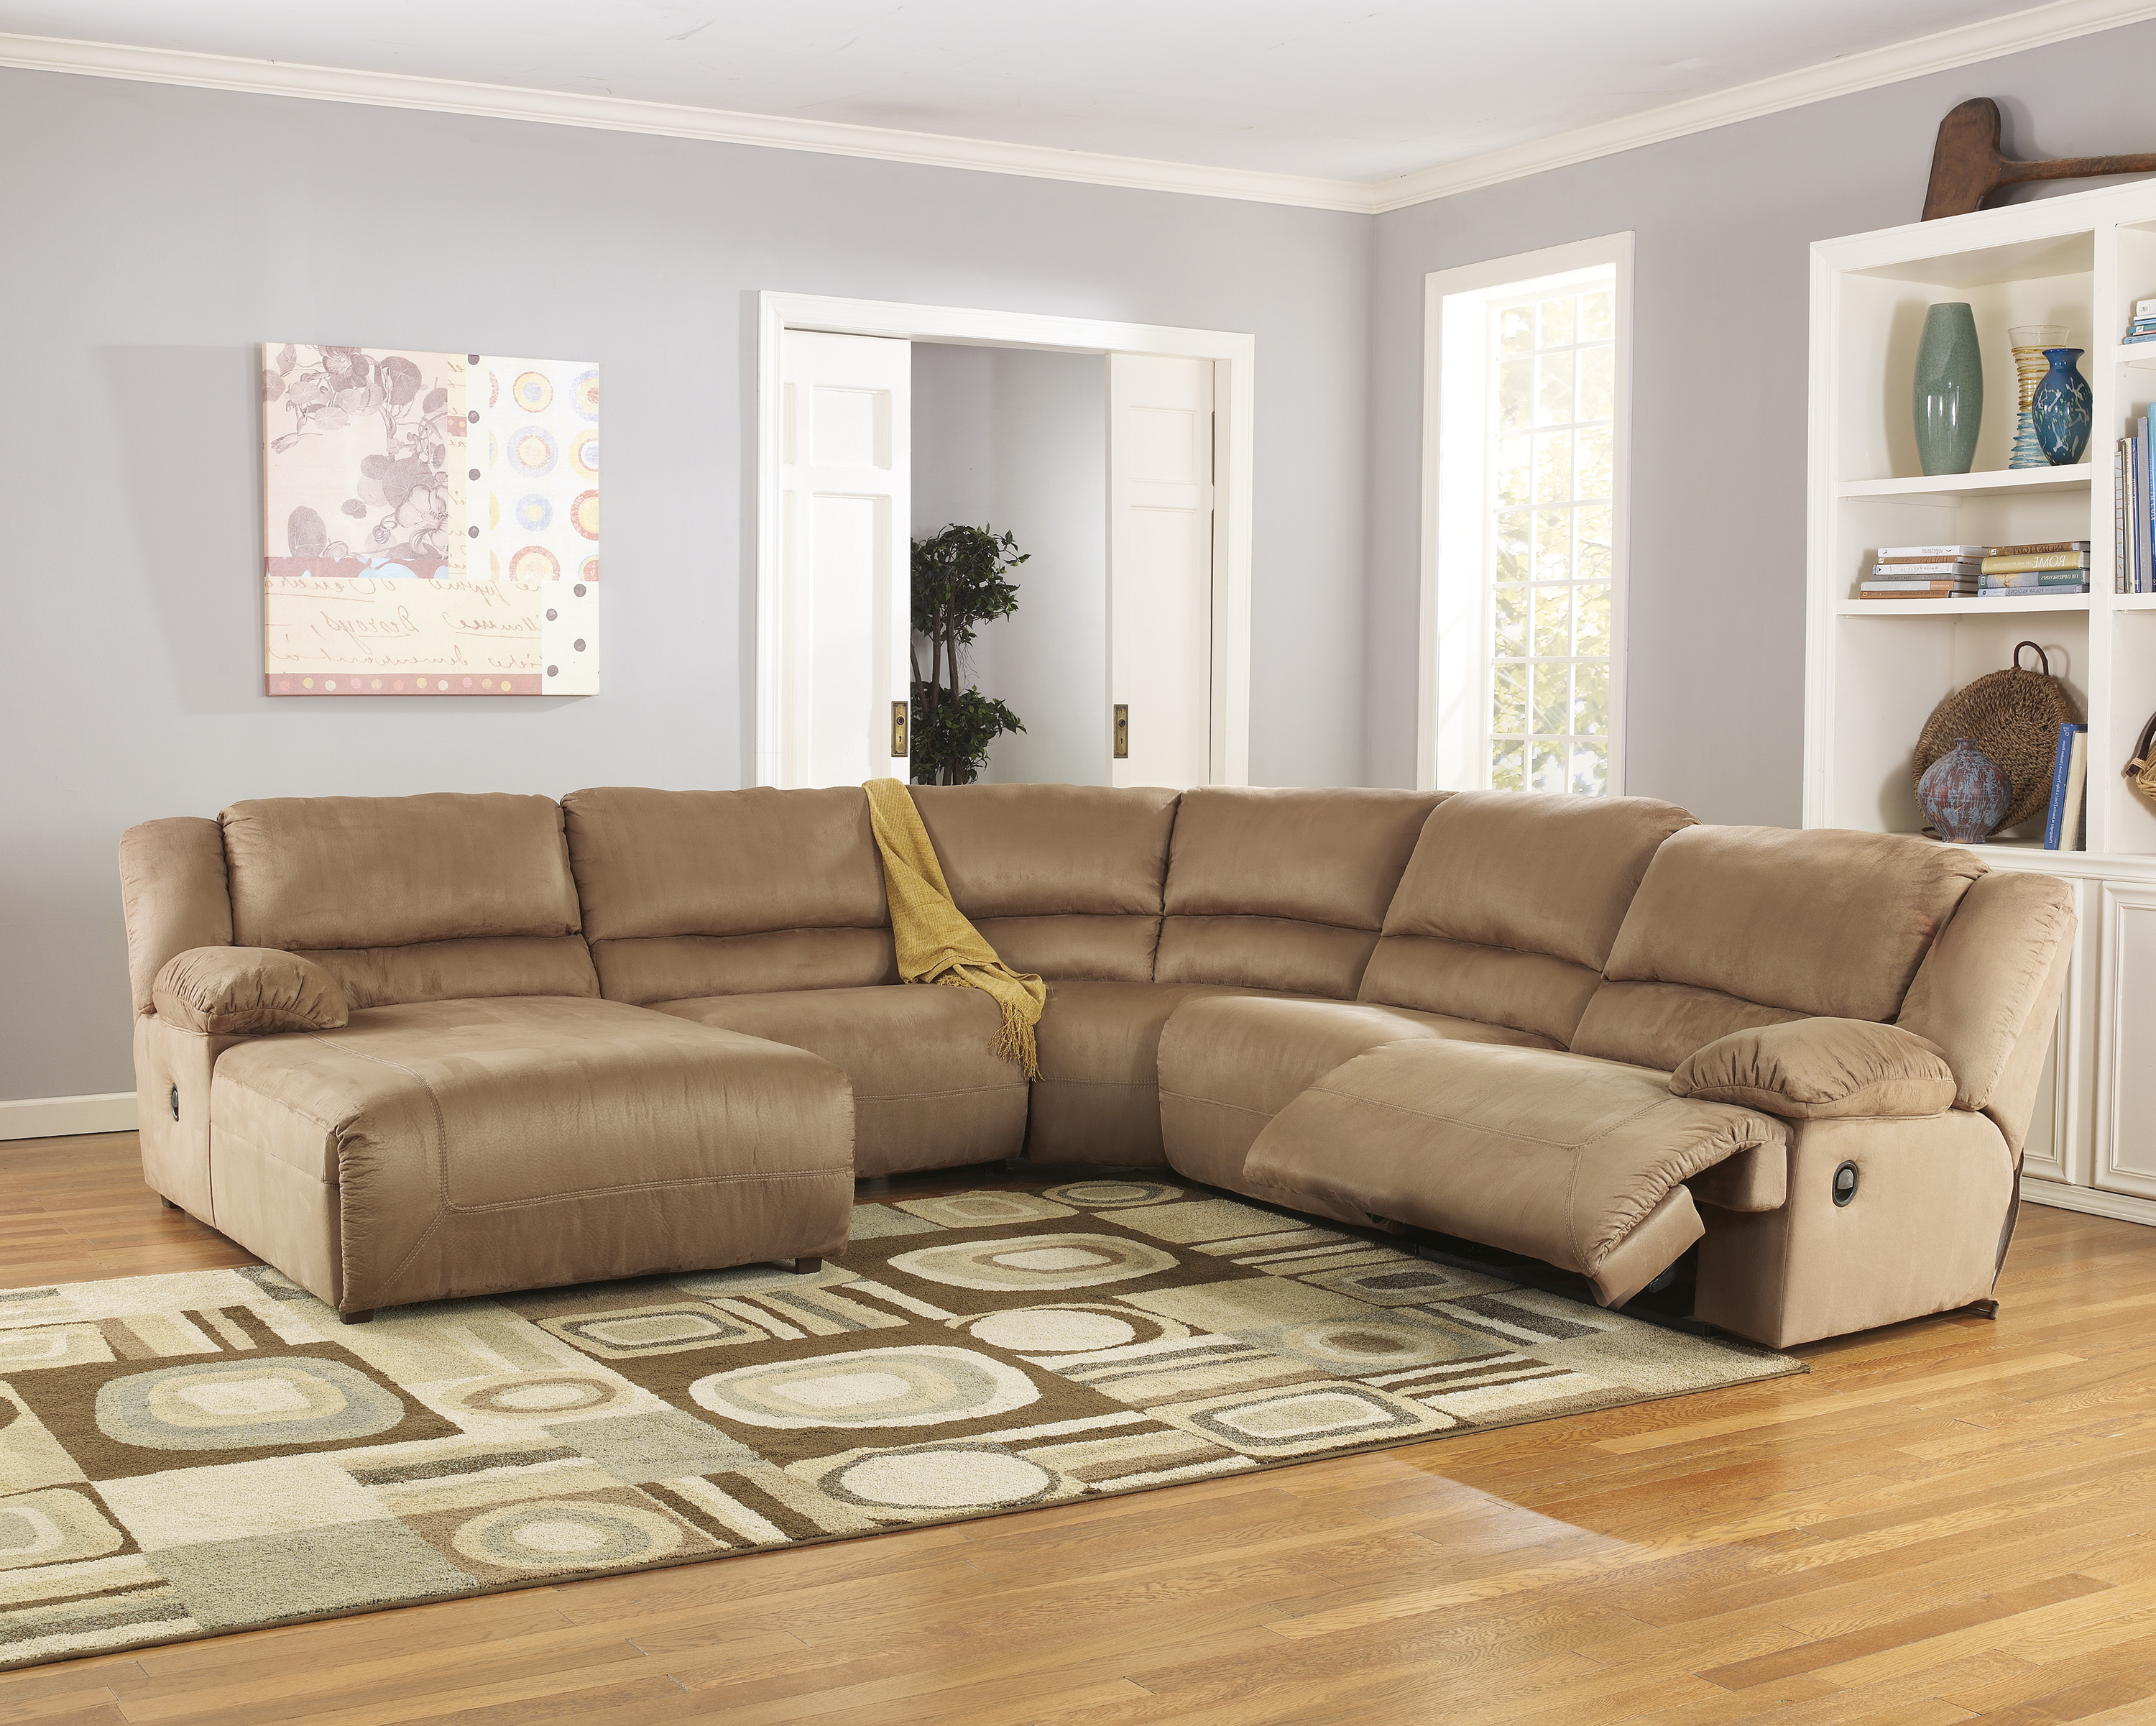 Ashley hogan 5pc left arm facing chaise sectional dallas for Ashley hogan chaise